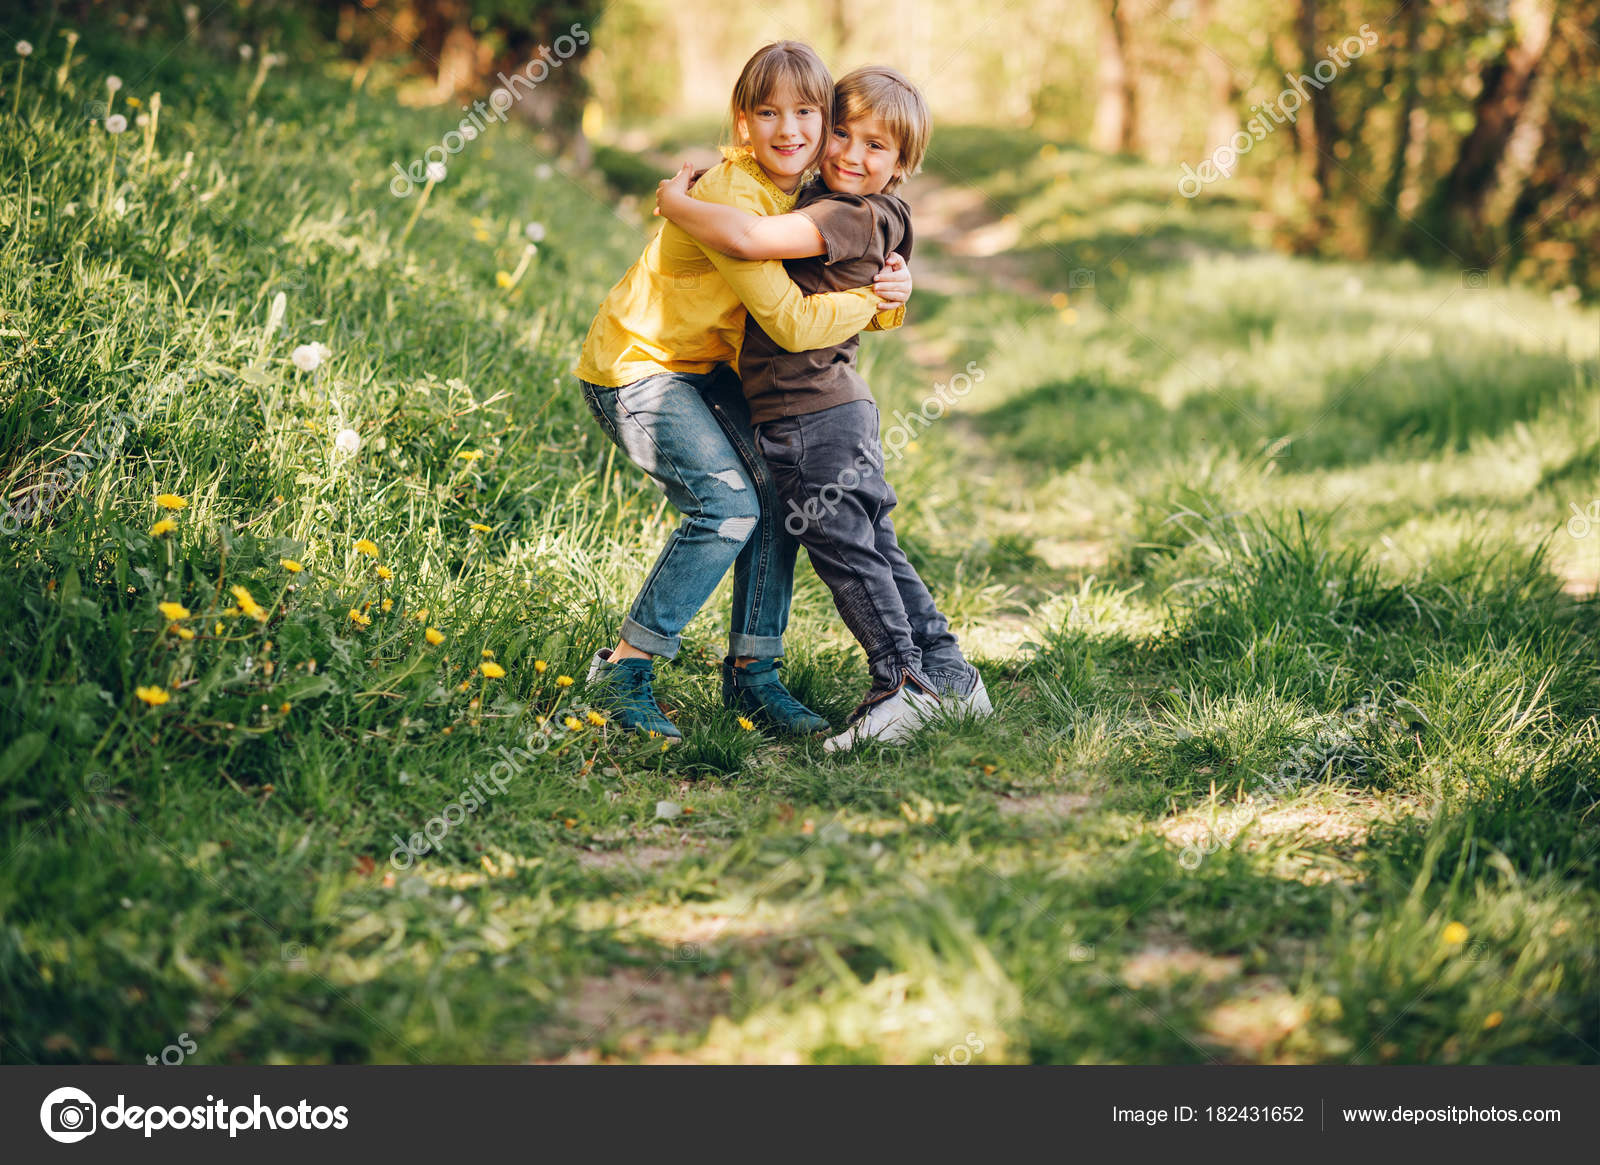 Two Funny Kids Playing Together Spring Forest Little Brother Sister